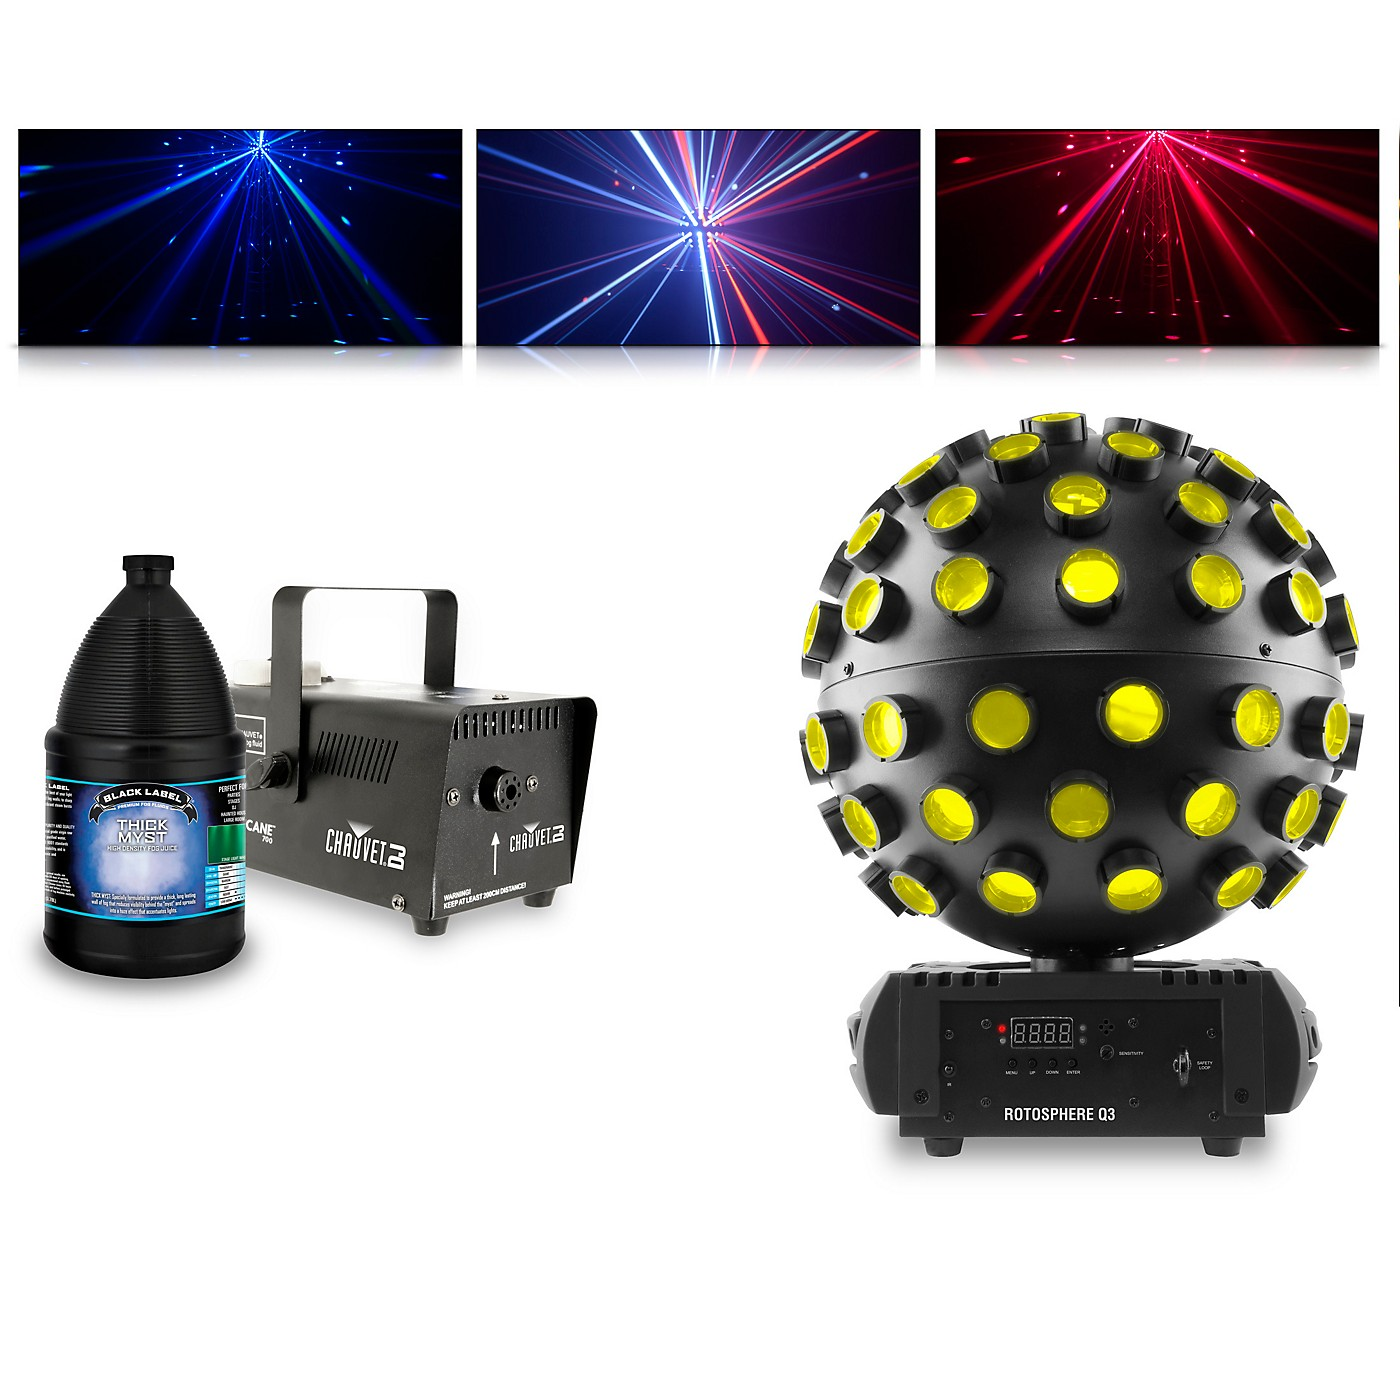 CHAUVET DJ Rotosphere Q3 with Hurricane 700 Fog Machine and Juice thumbnail